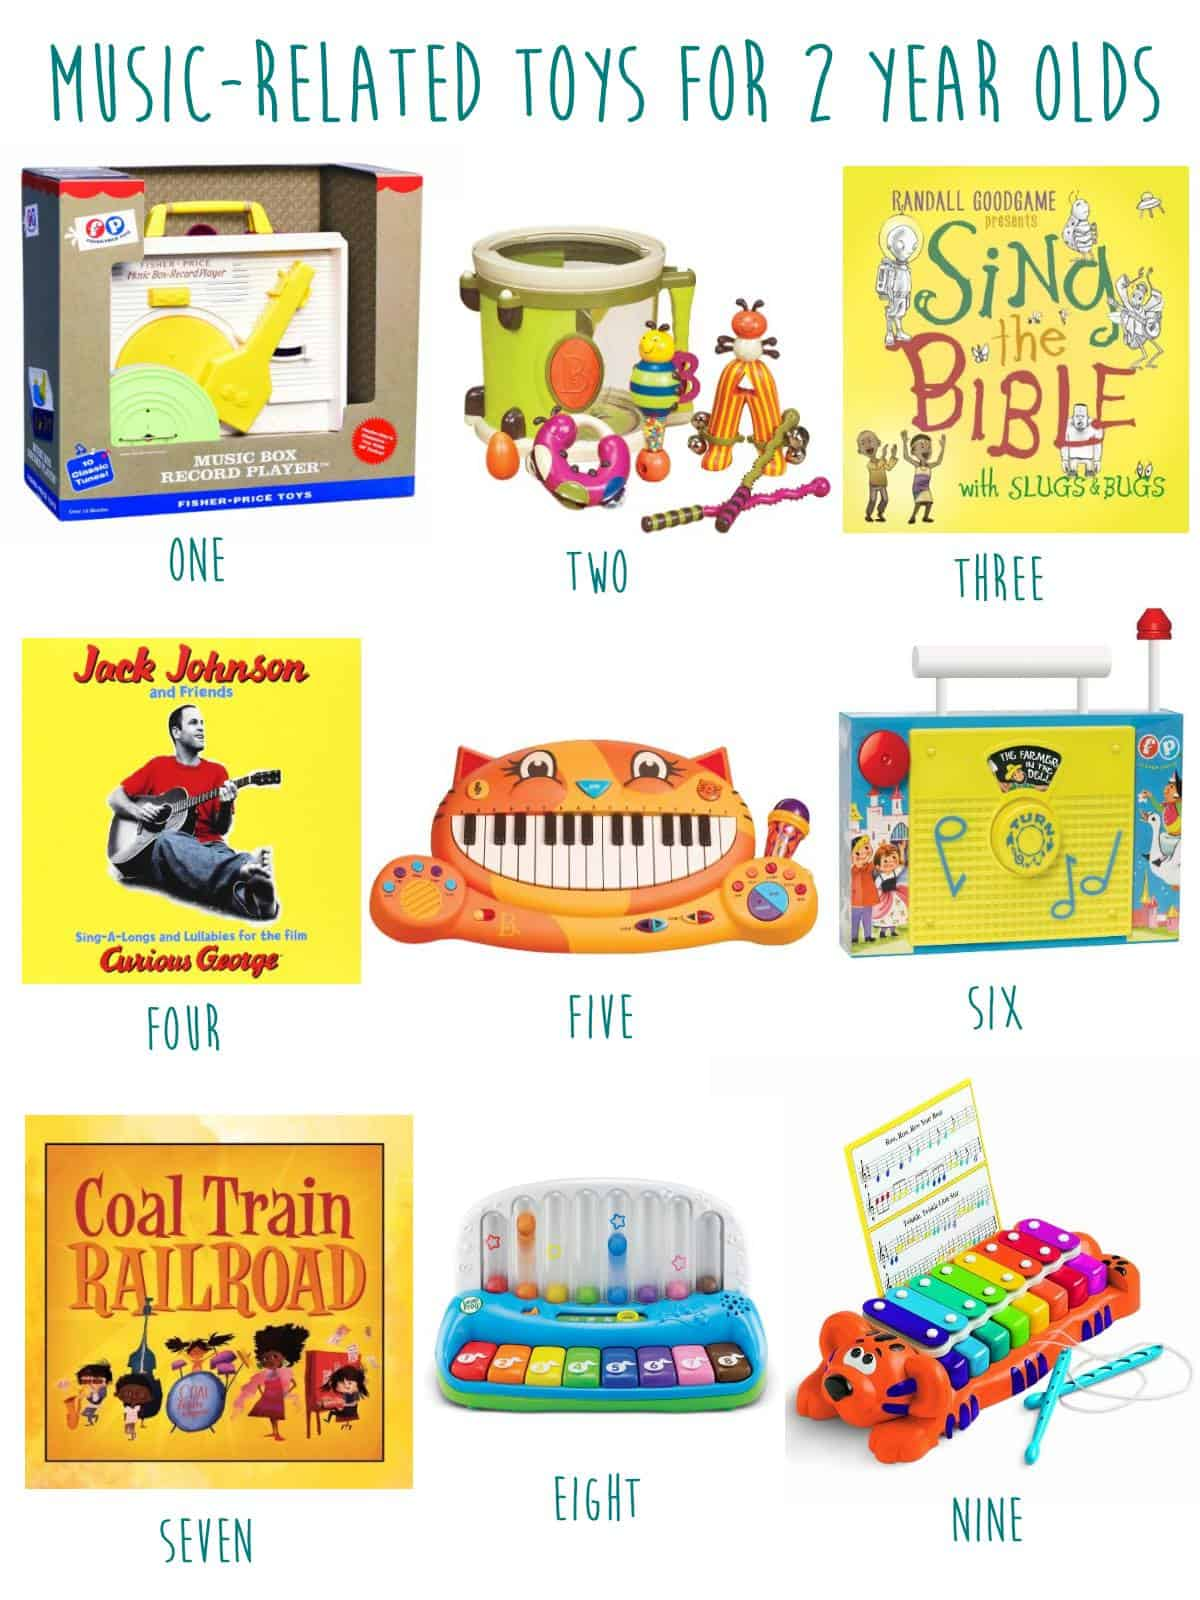 Favorites for 2 Year Old Boys